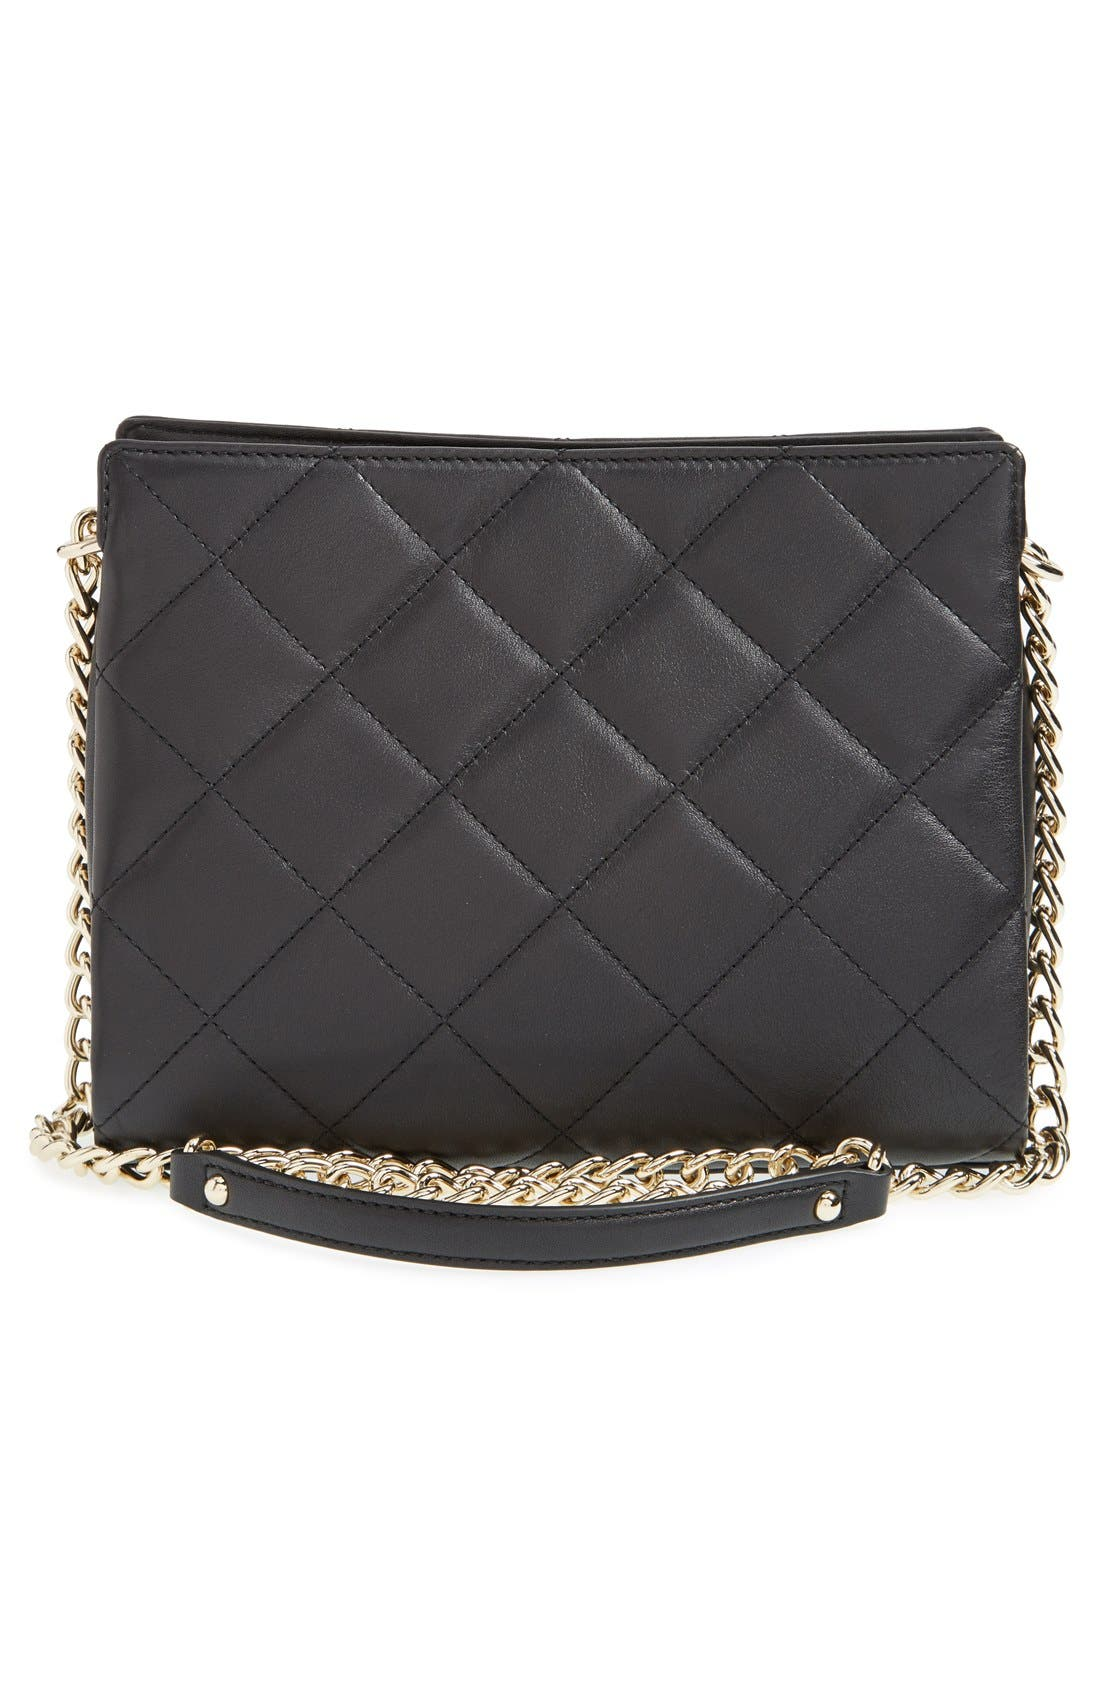 Alternate Image 3  - kate spade new york 'emerson place - mini convertible phoebe' quilted leather shoulder bag